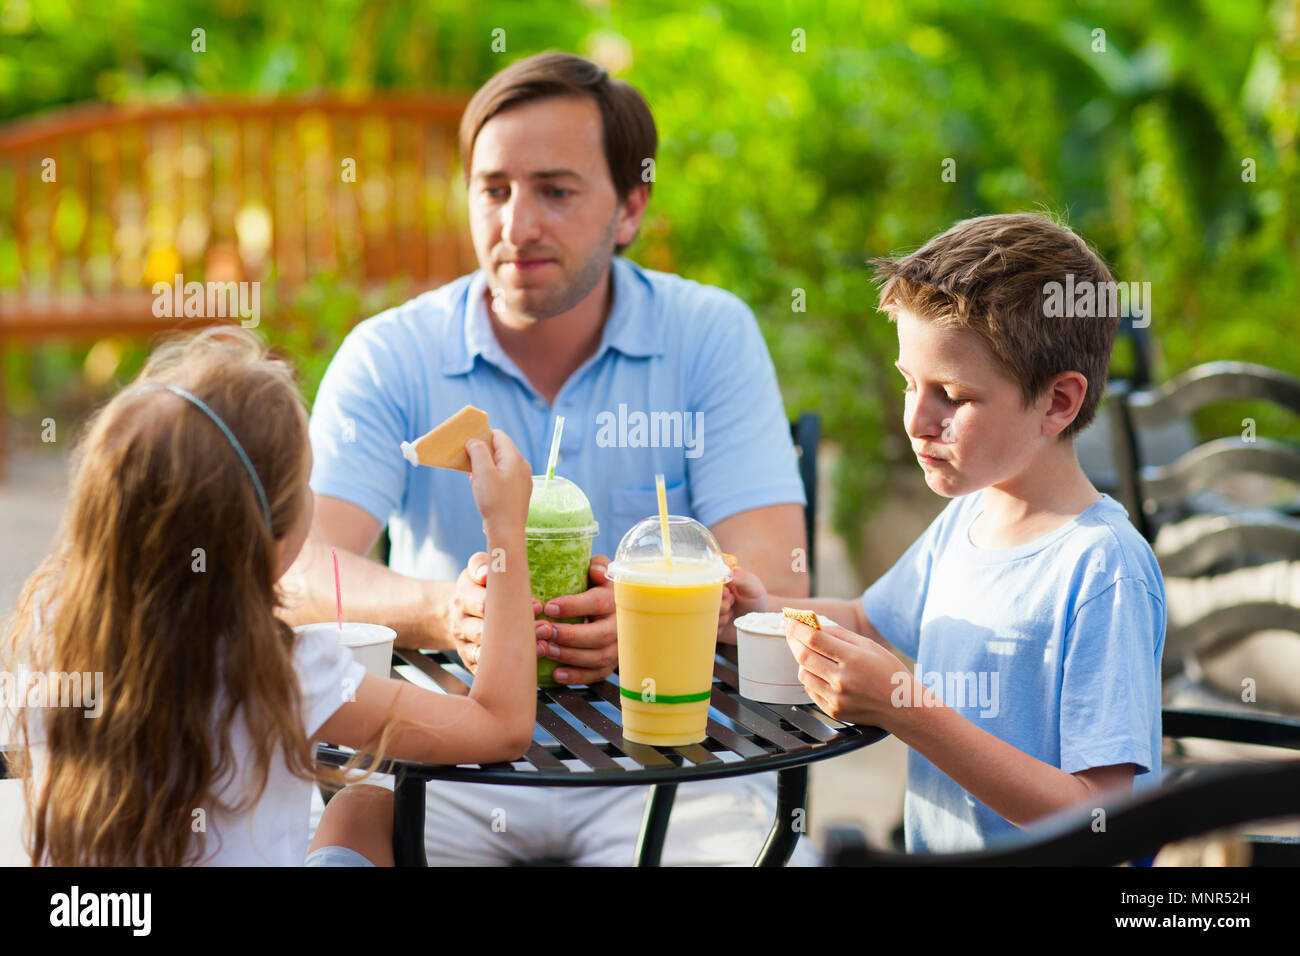 Young father and his two kids at outdoor cafe on summer day - Stock Image